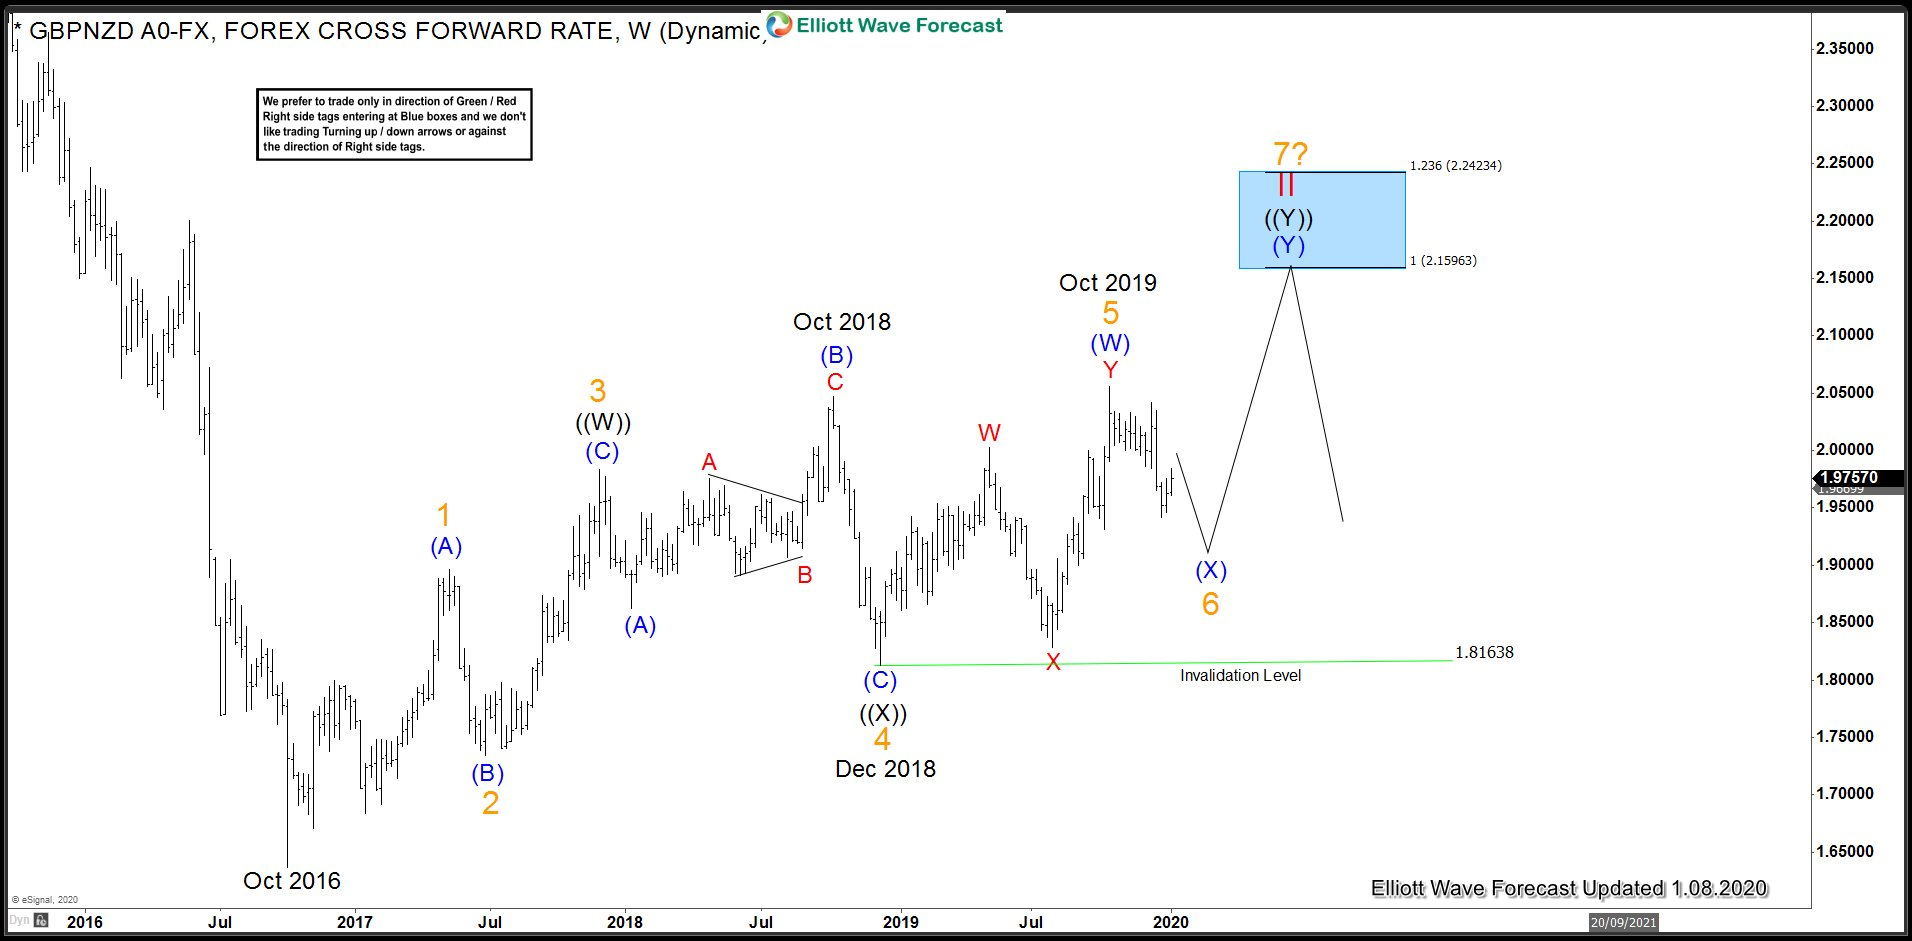 GBP Crosses - GBPNZD Bullish Elliott Wave Sequence from October 2016 low